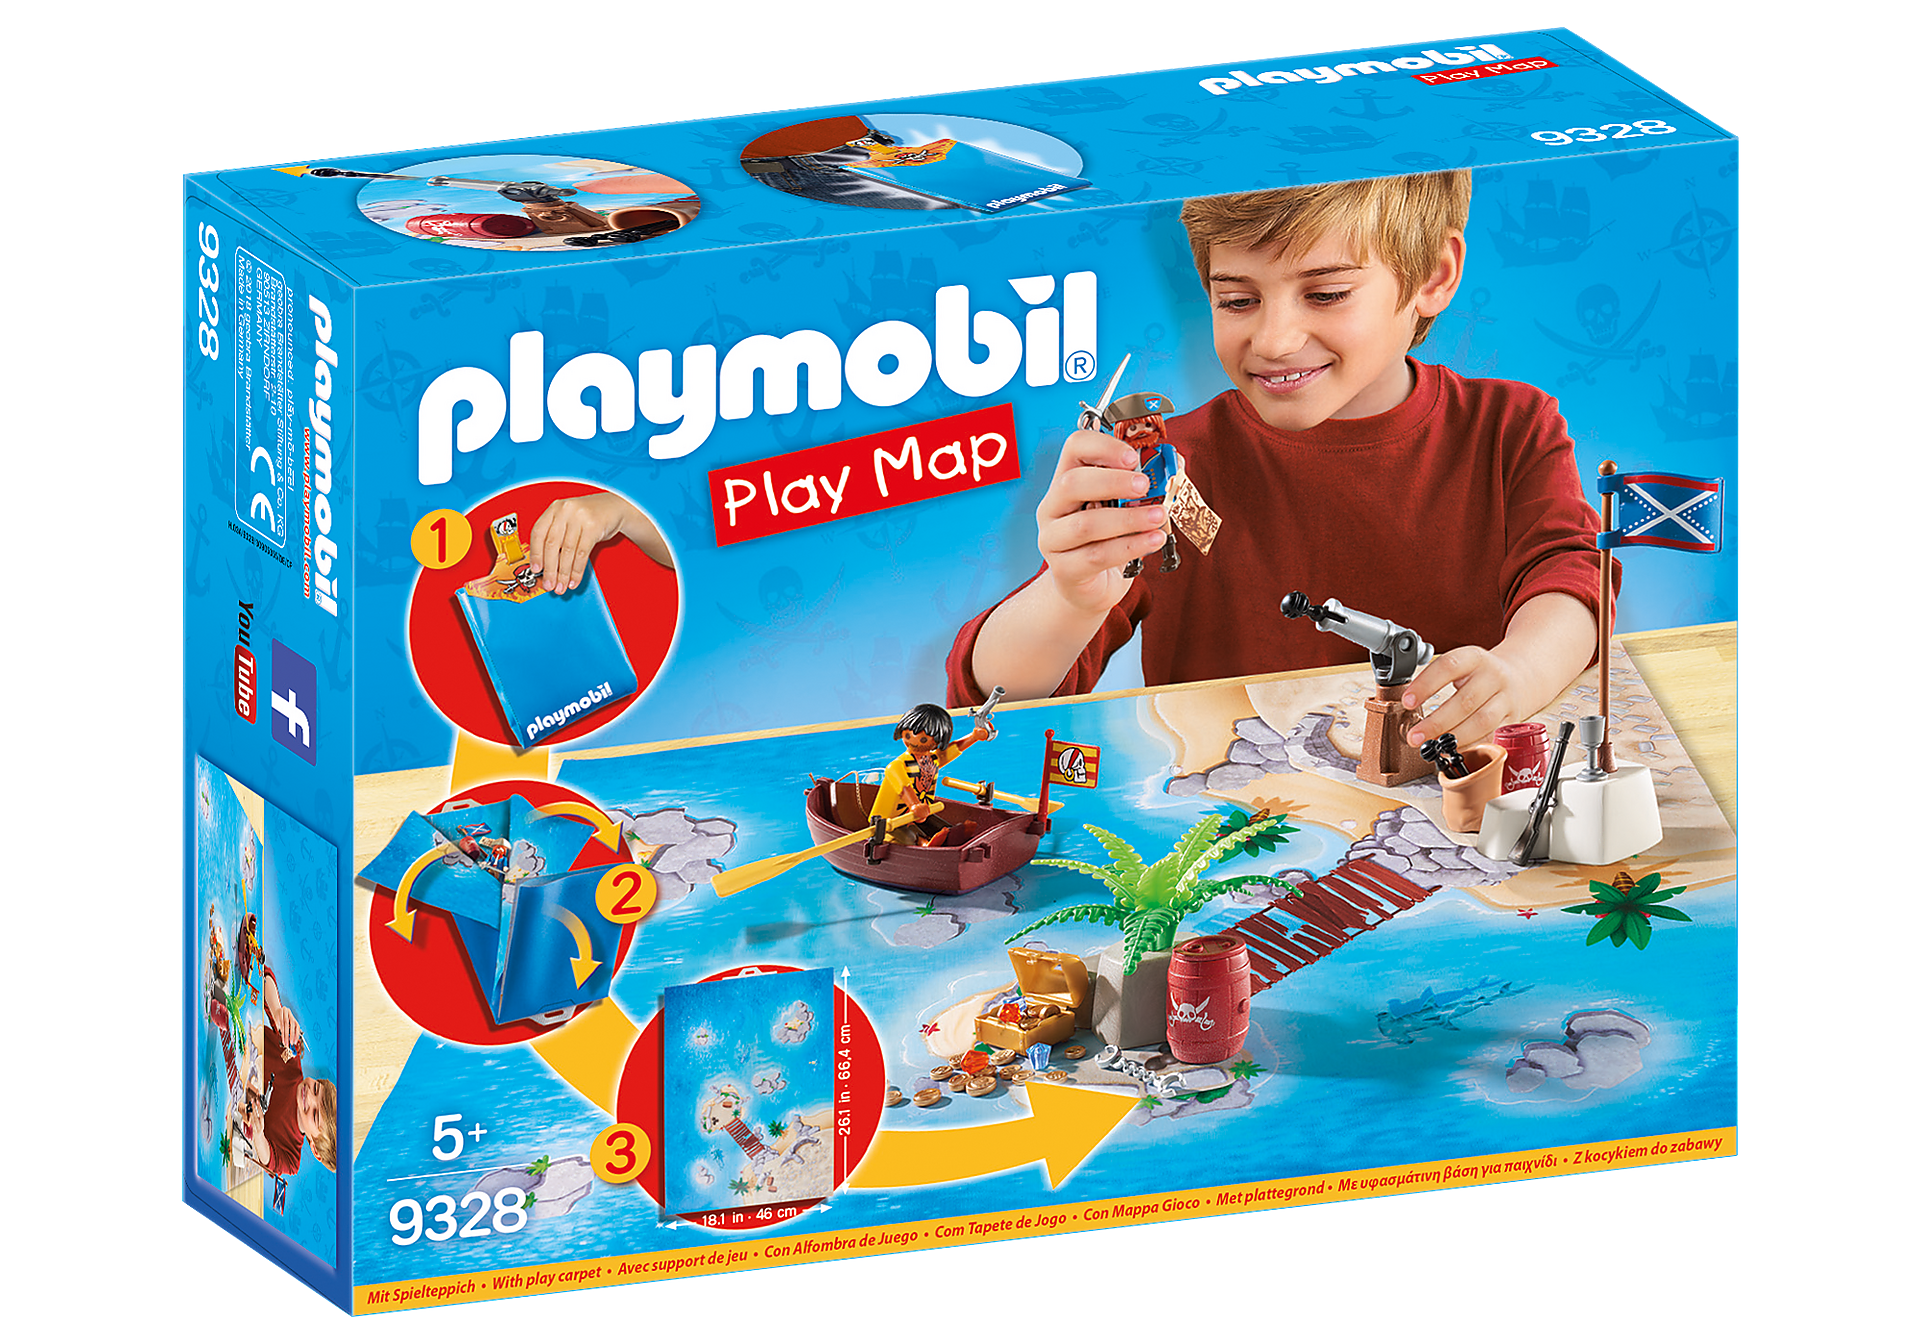 http://media.playmobil.com/i/playmobil/9328_product_box_front/Pirate Adventure Play Map